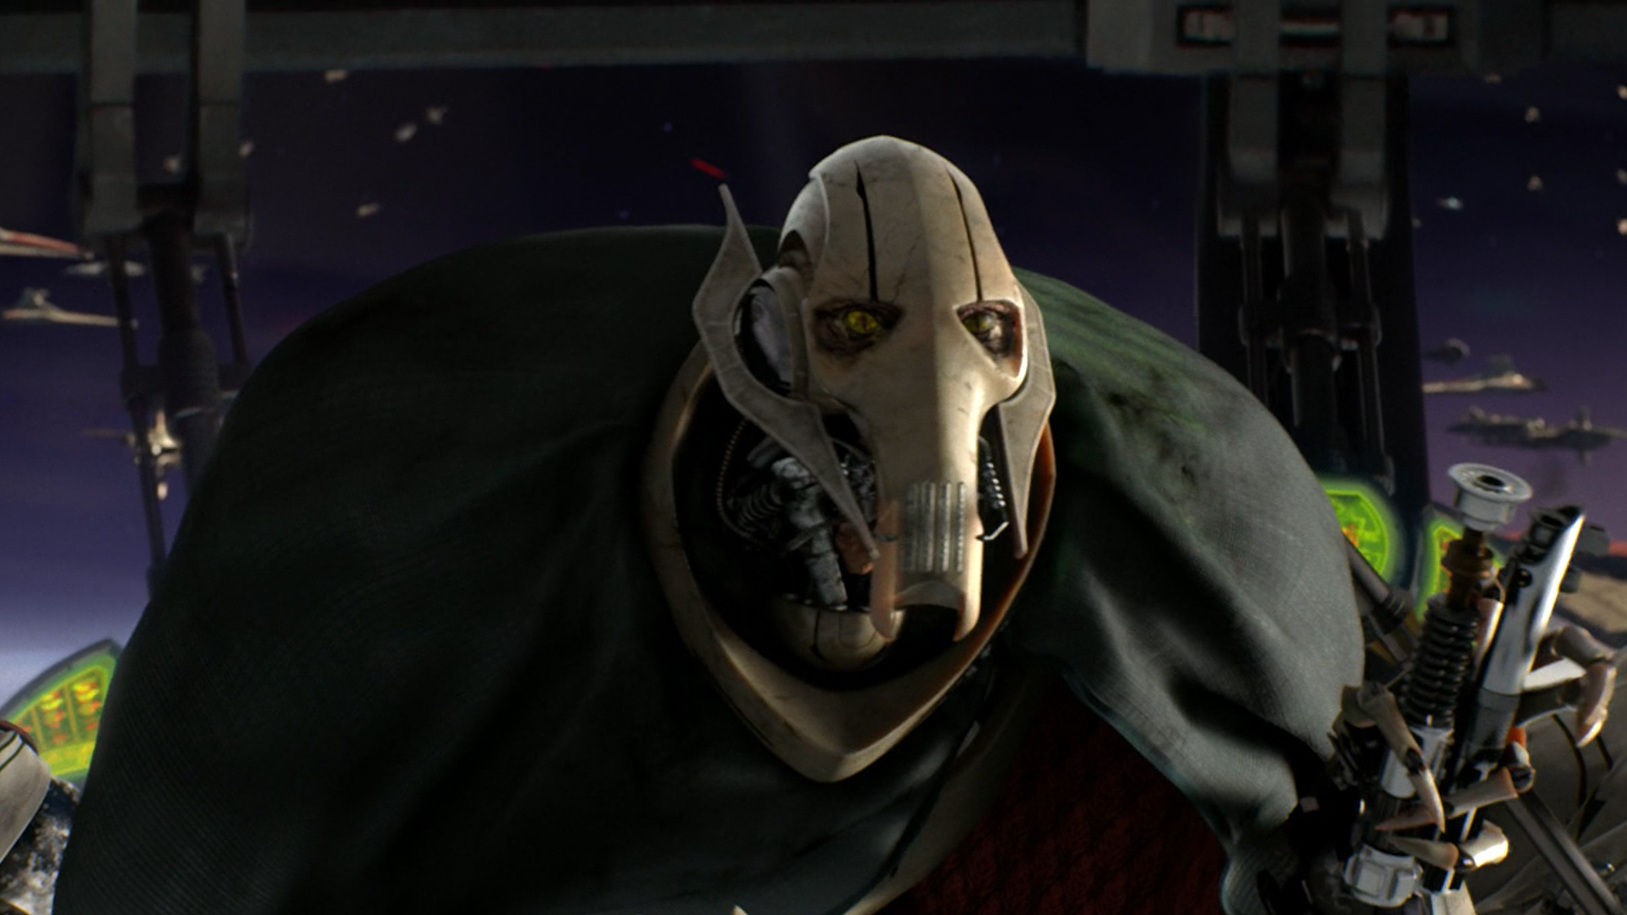 General Grievance